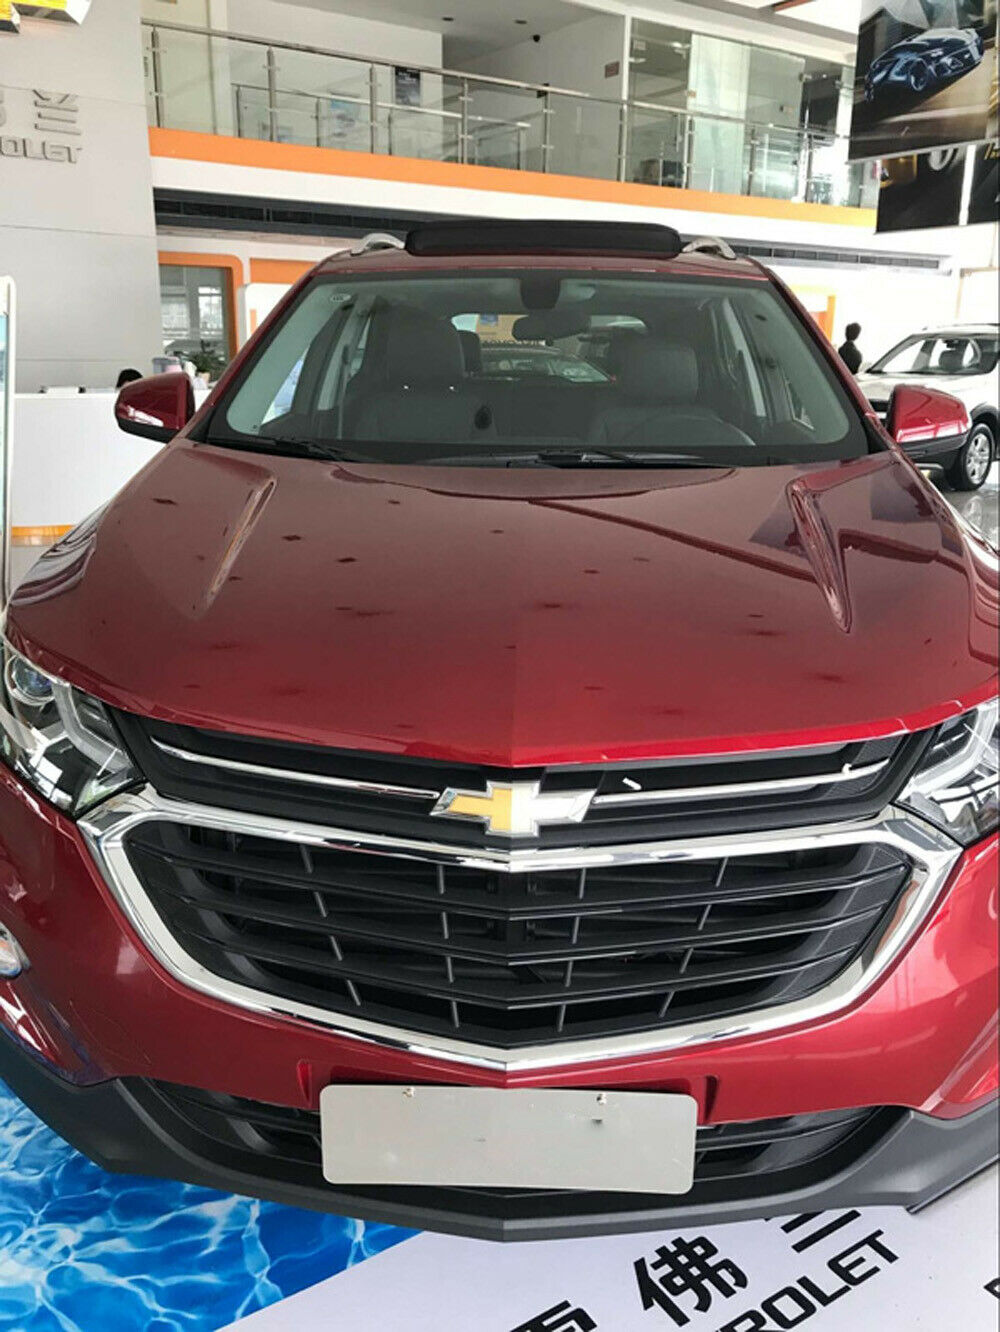 For Chevrolet Equinox 2018-2019 ABS Chrome Front Grill Grille Trim Cover